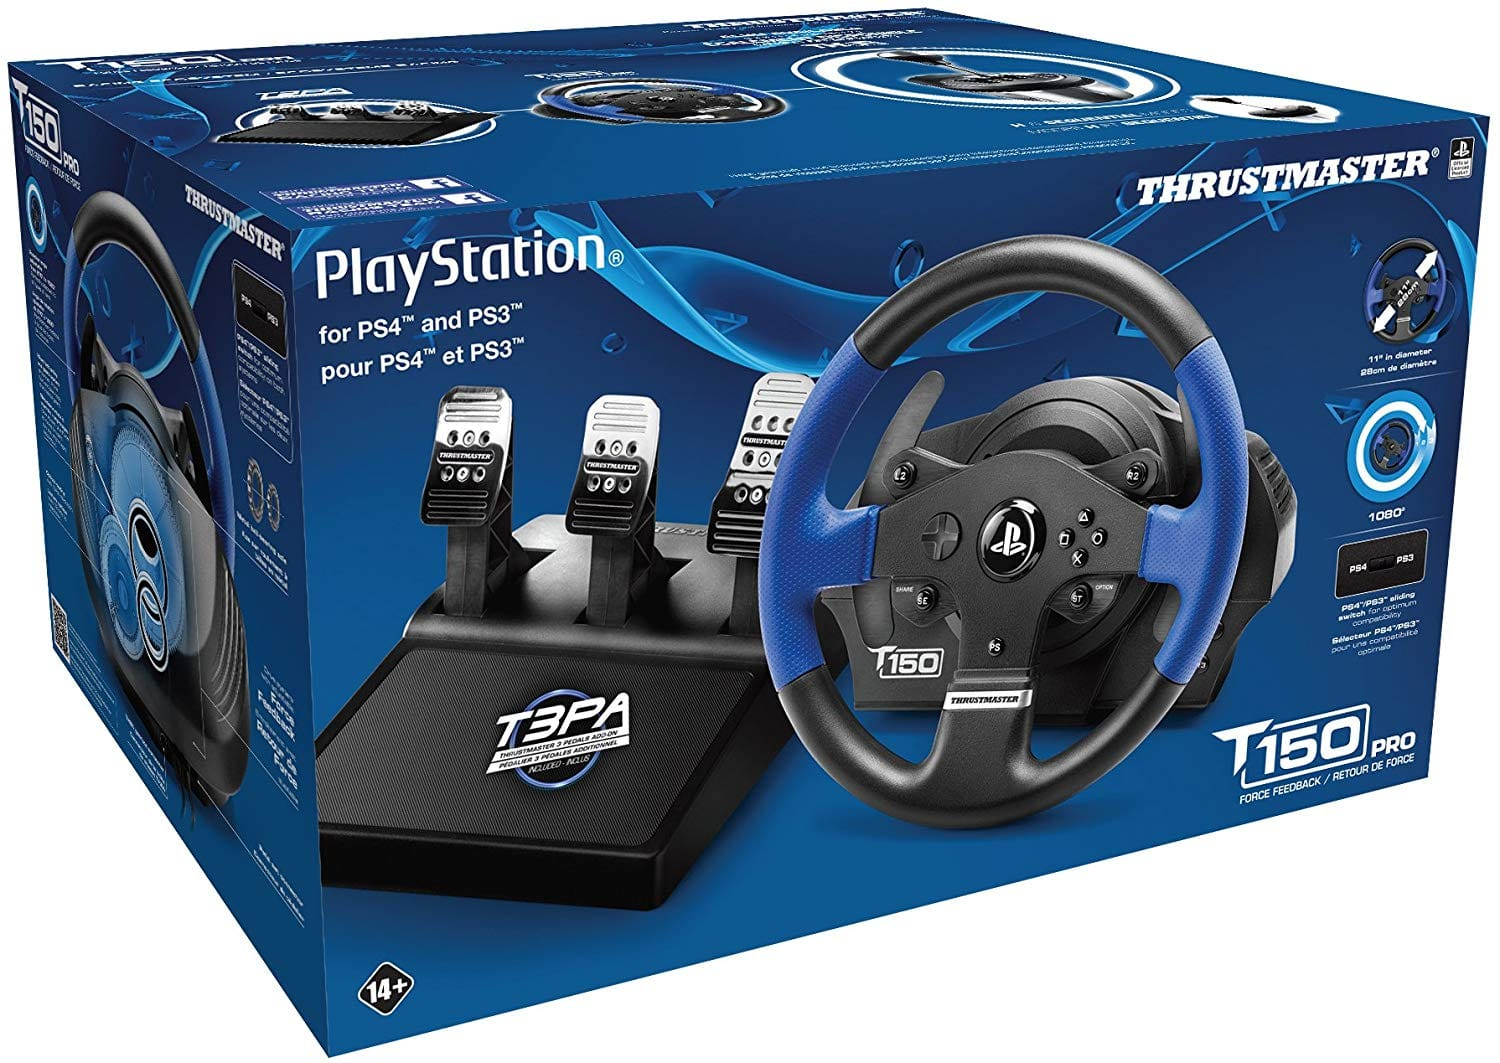 Thrustmaster T150 PRO Racing Wheel w/ Pedals (PS4 / PS3 / PC) EXPIRED